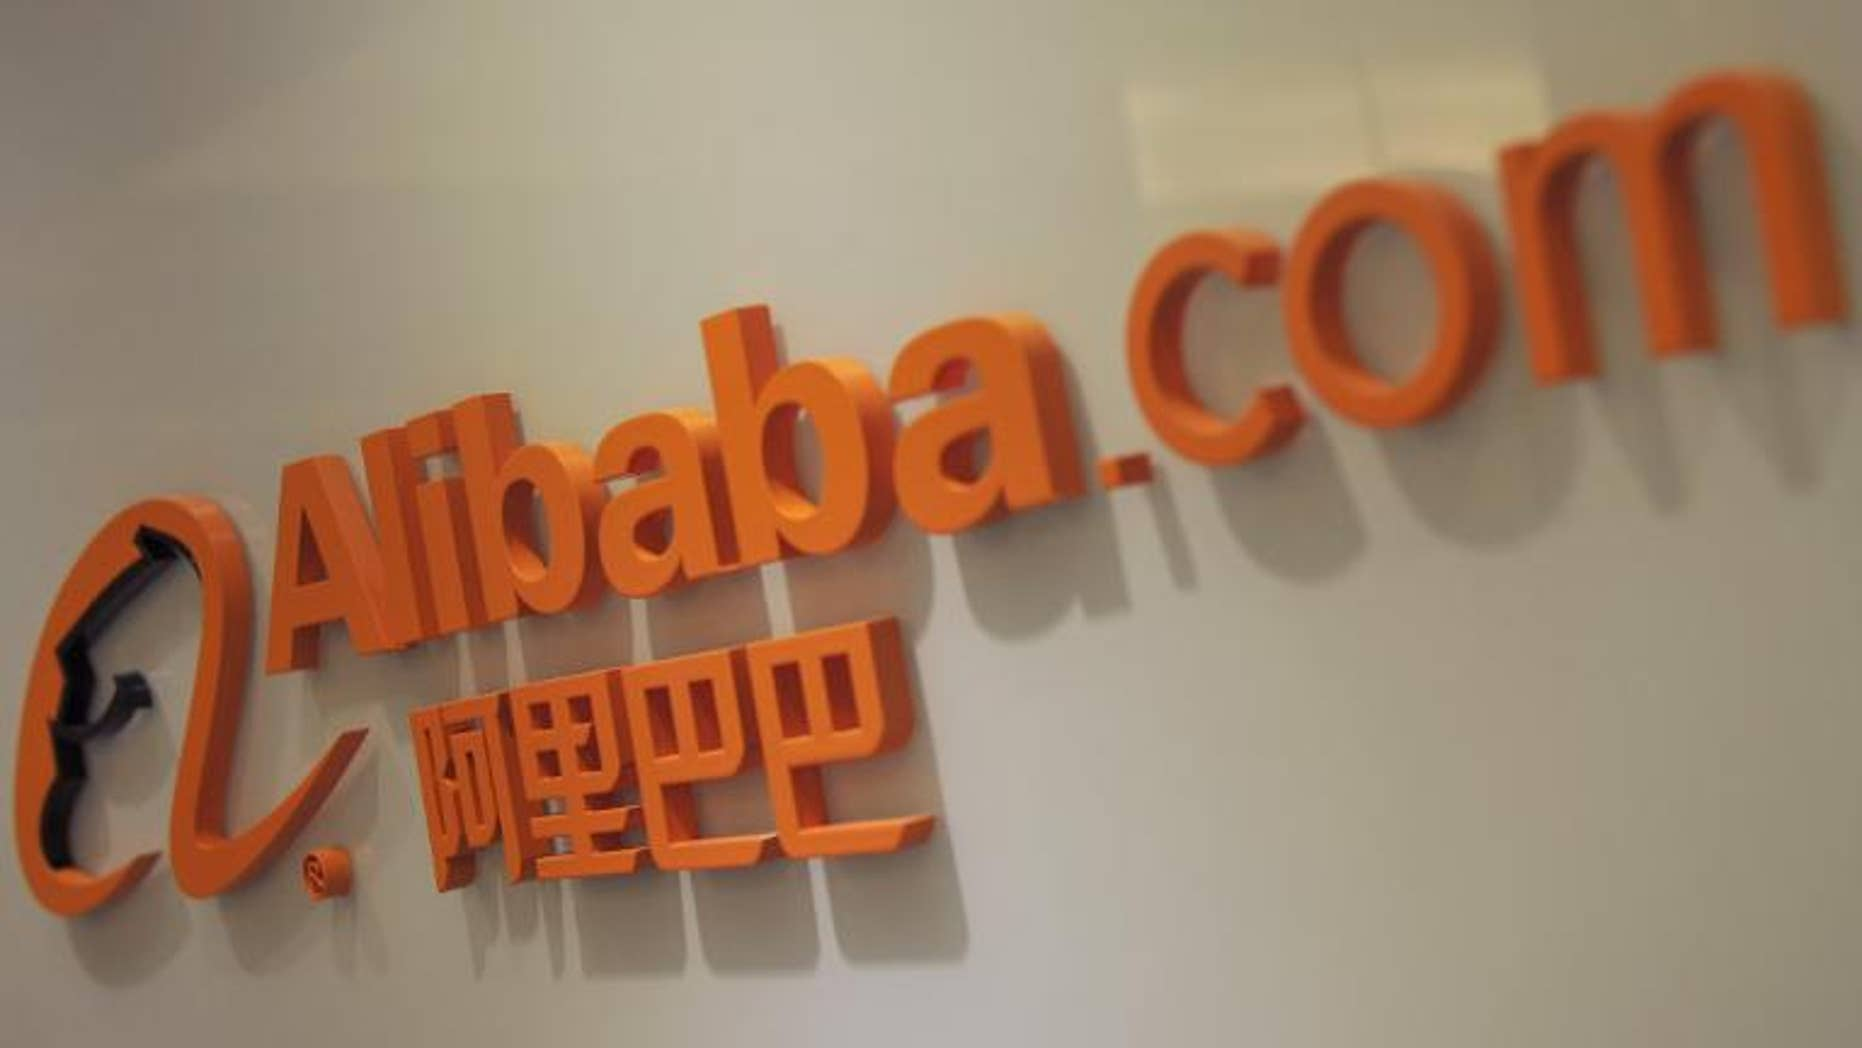 The collapse of talks to list Alibaba in Hong Kong prompted co-founder Joe Tsai to warn the world's top firms could bypass the city unless it was more flexible